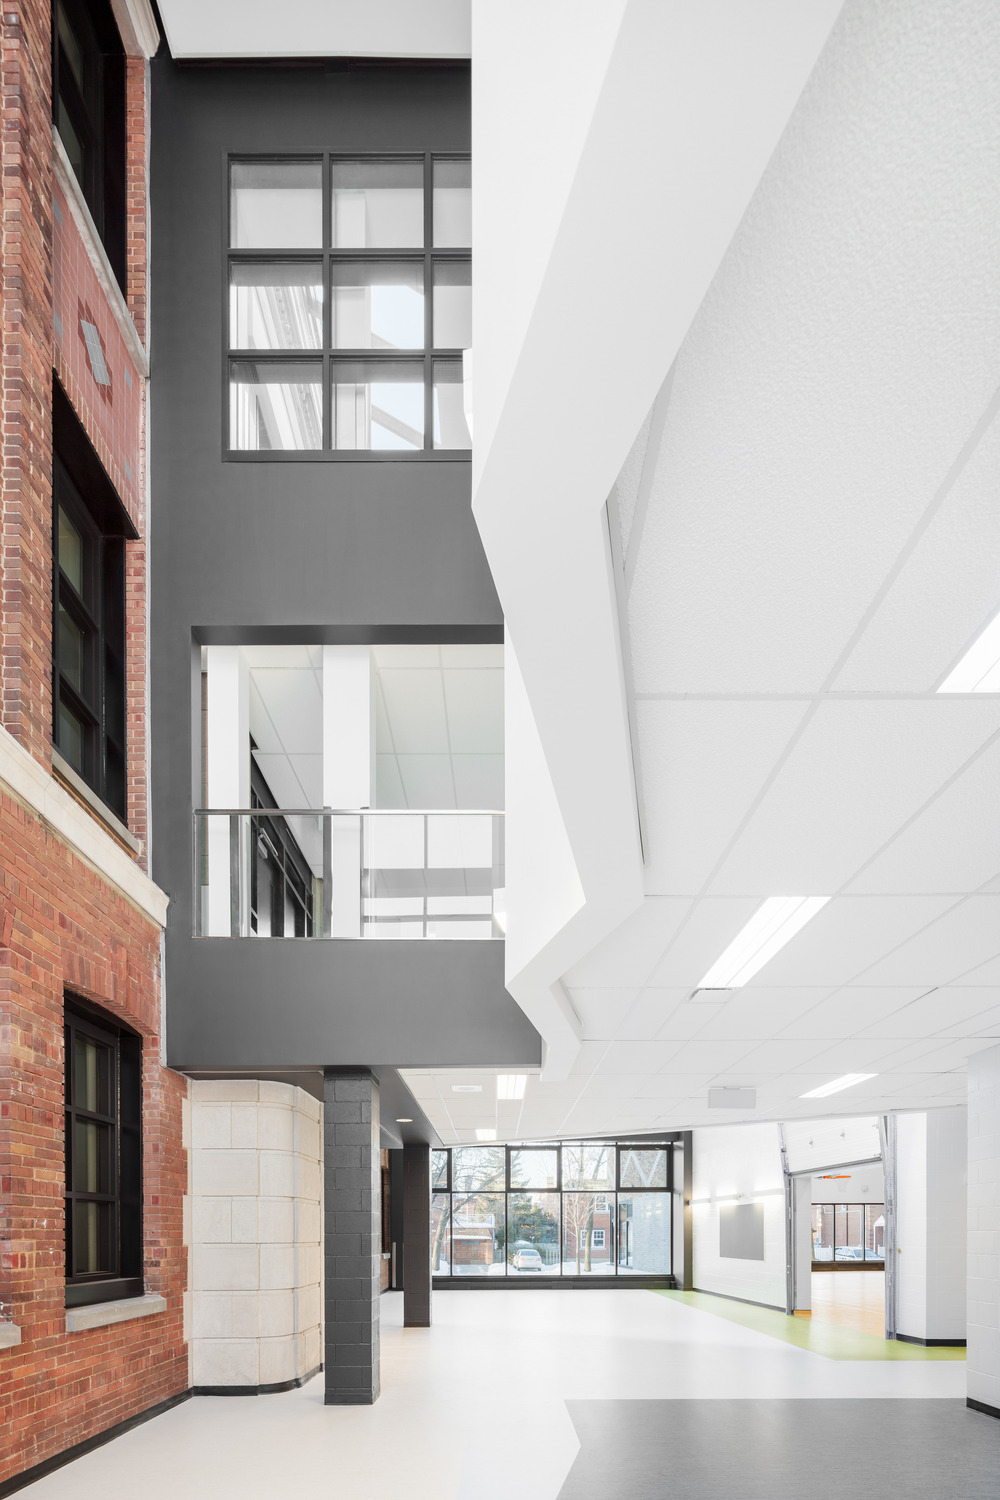 Barclay School Expansion / NFOE   ArchDaily